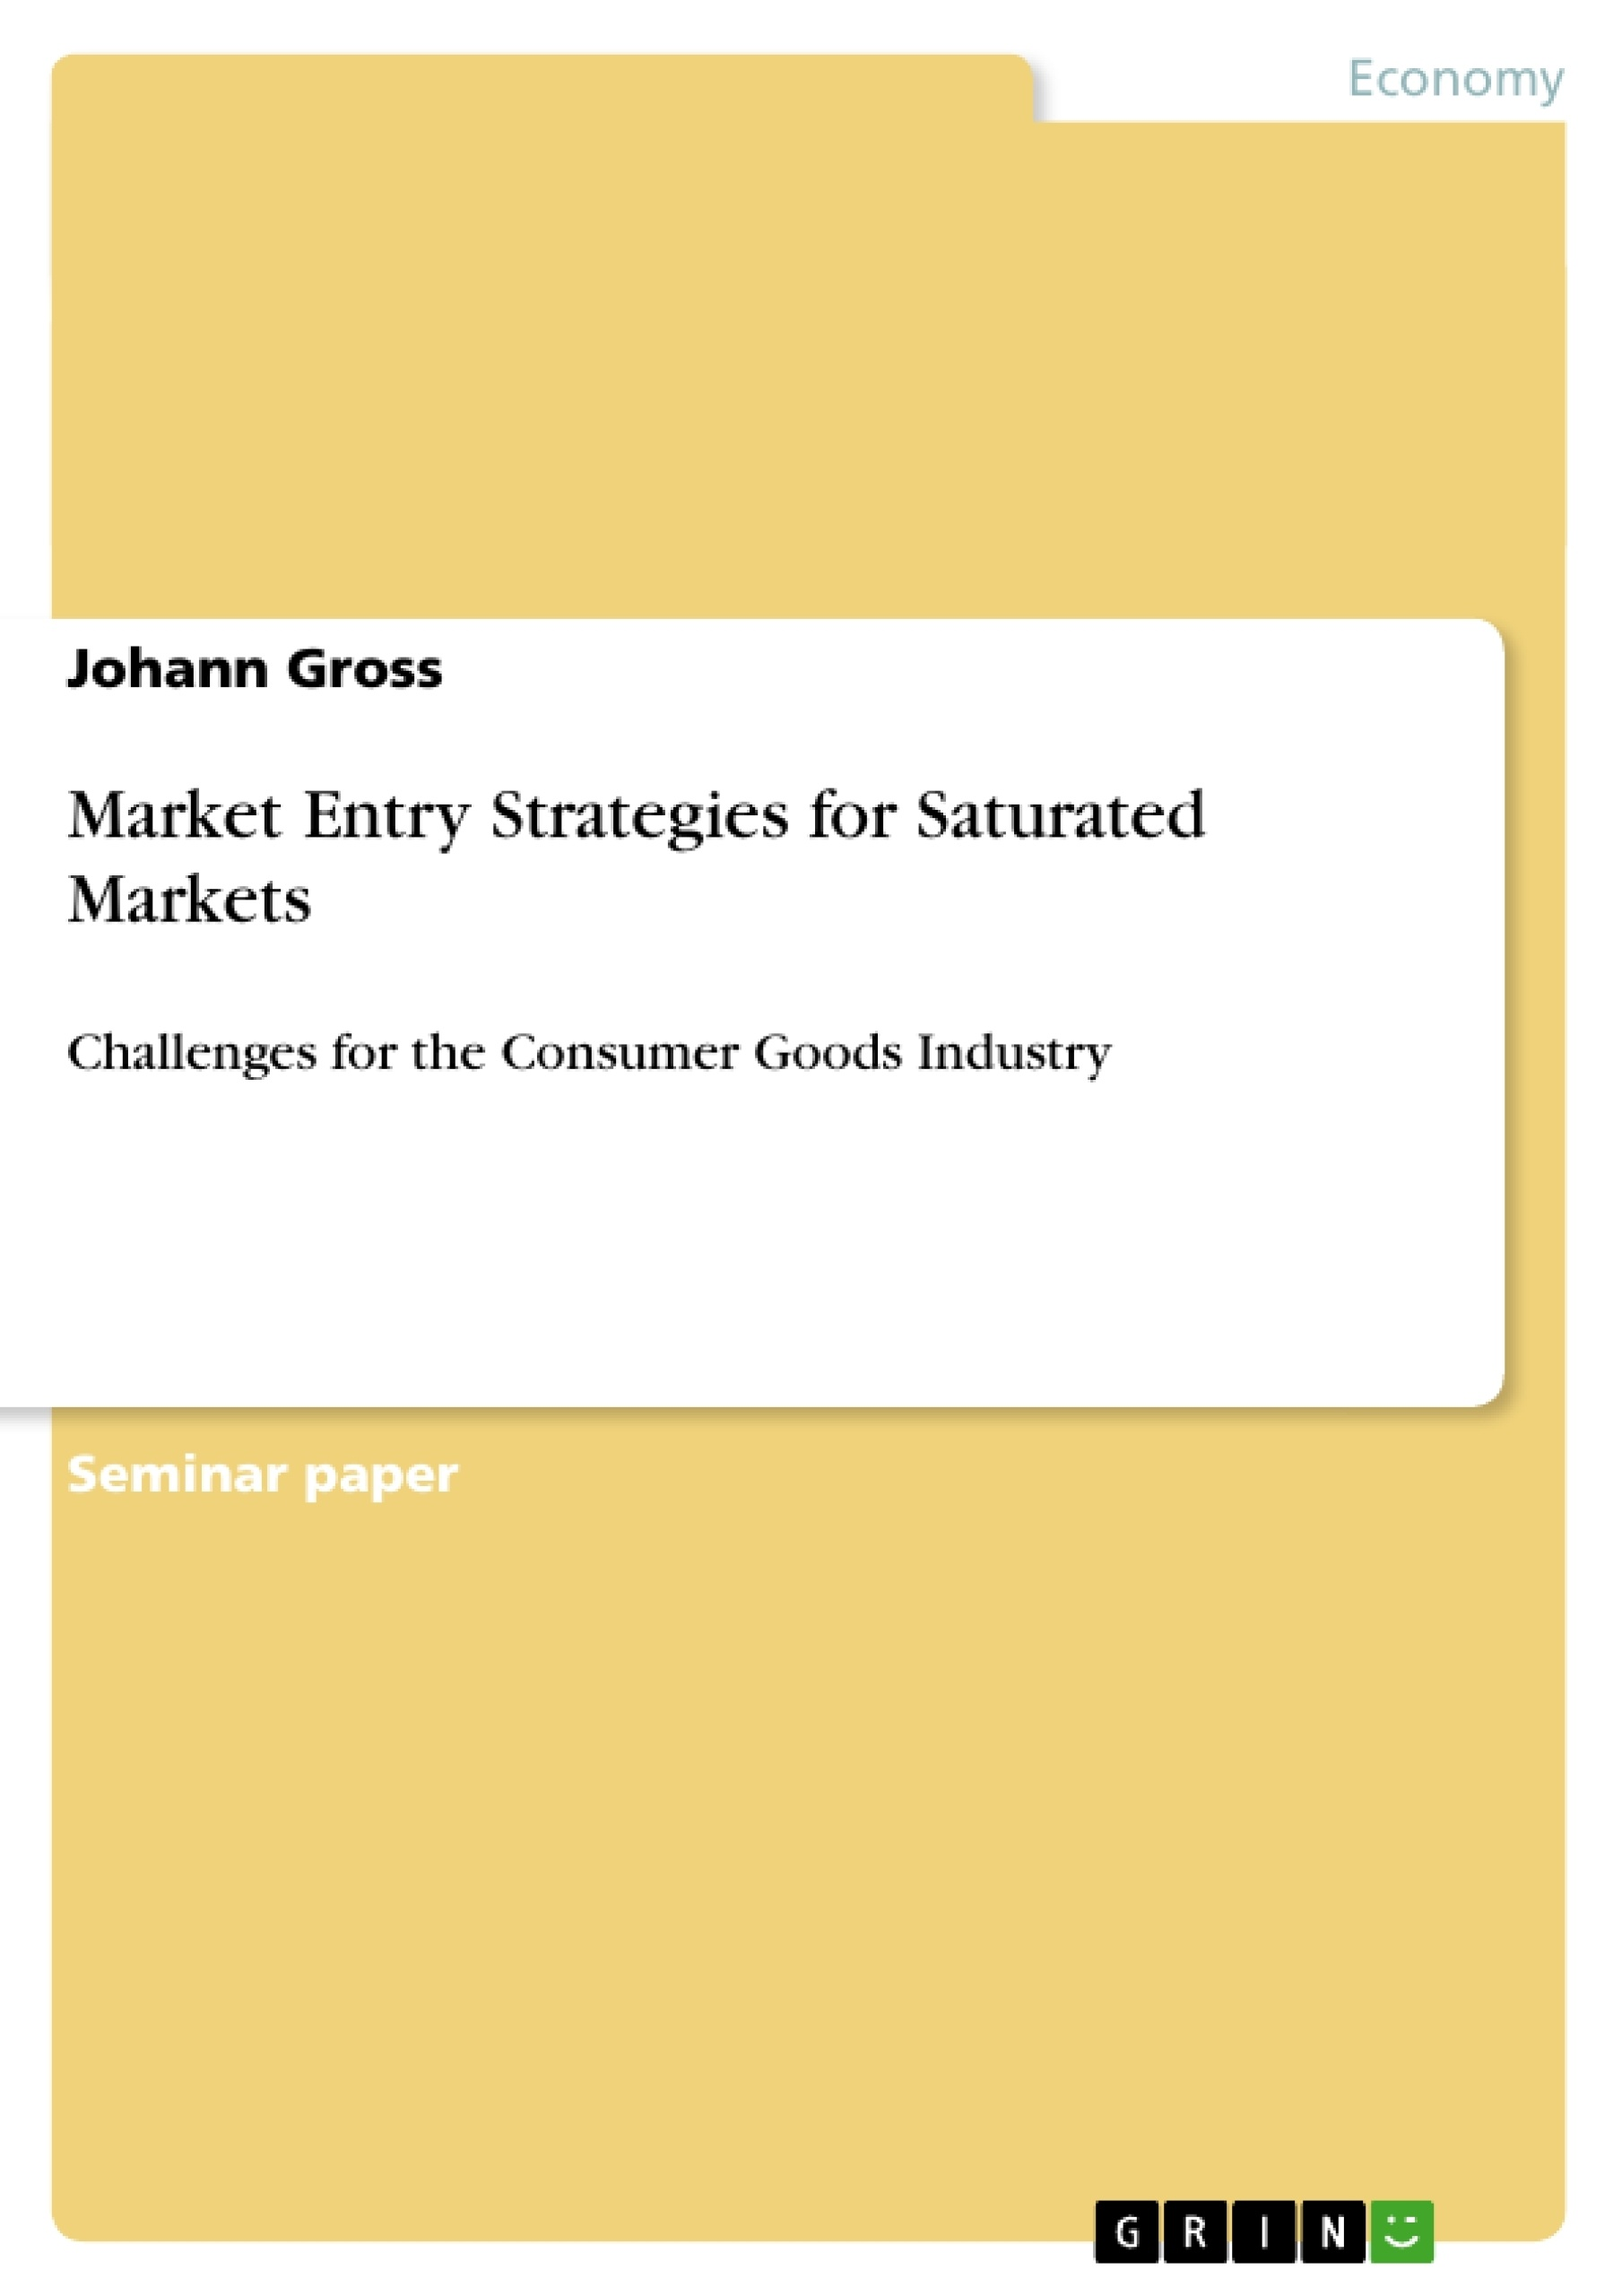 Title: Market Entry Strategies for Saturated Markets